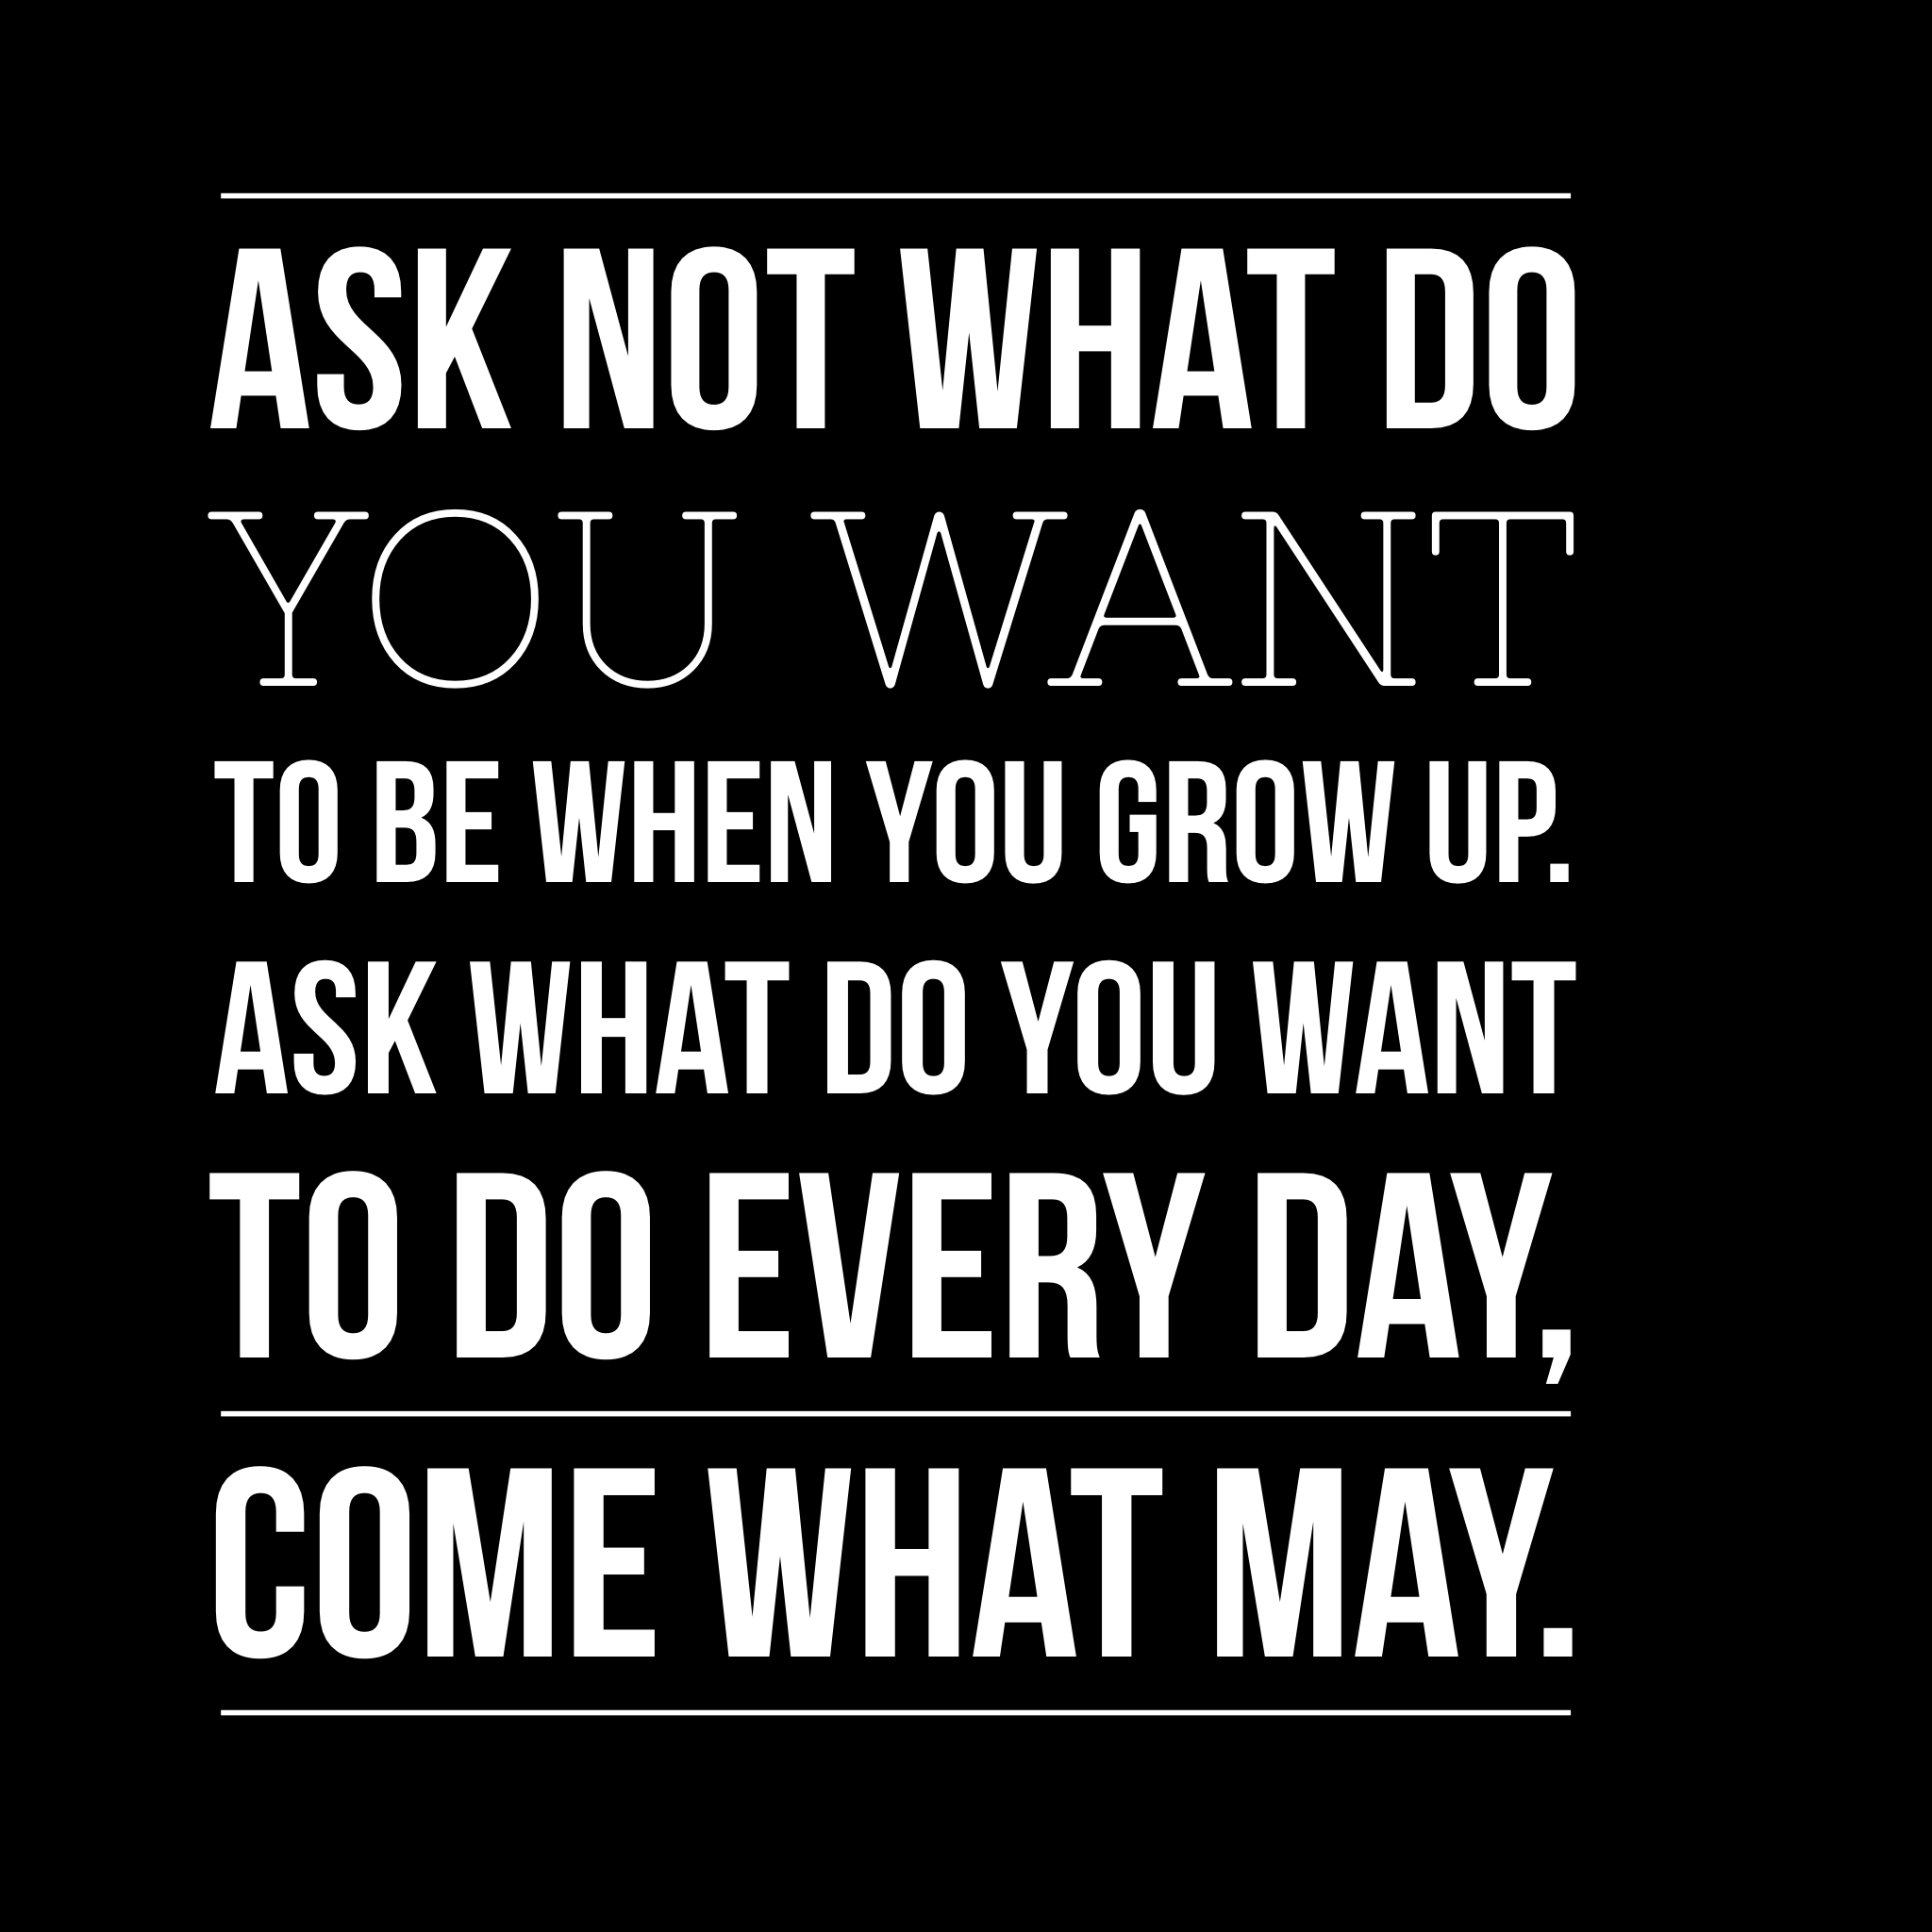 Grow Up Quotes Motivational Quotes  Ask Not What Do You Want To Be When You Grow